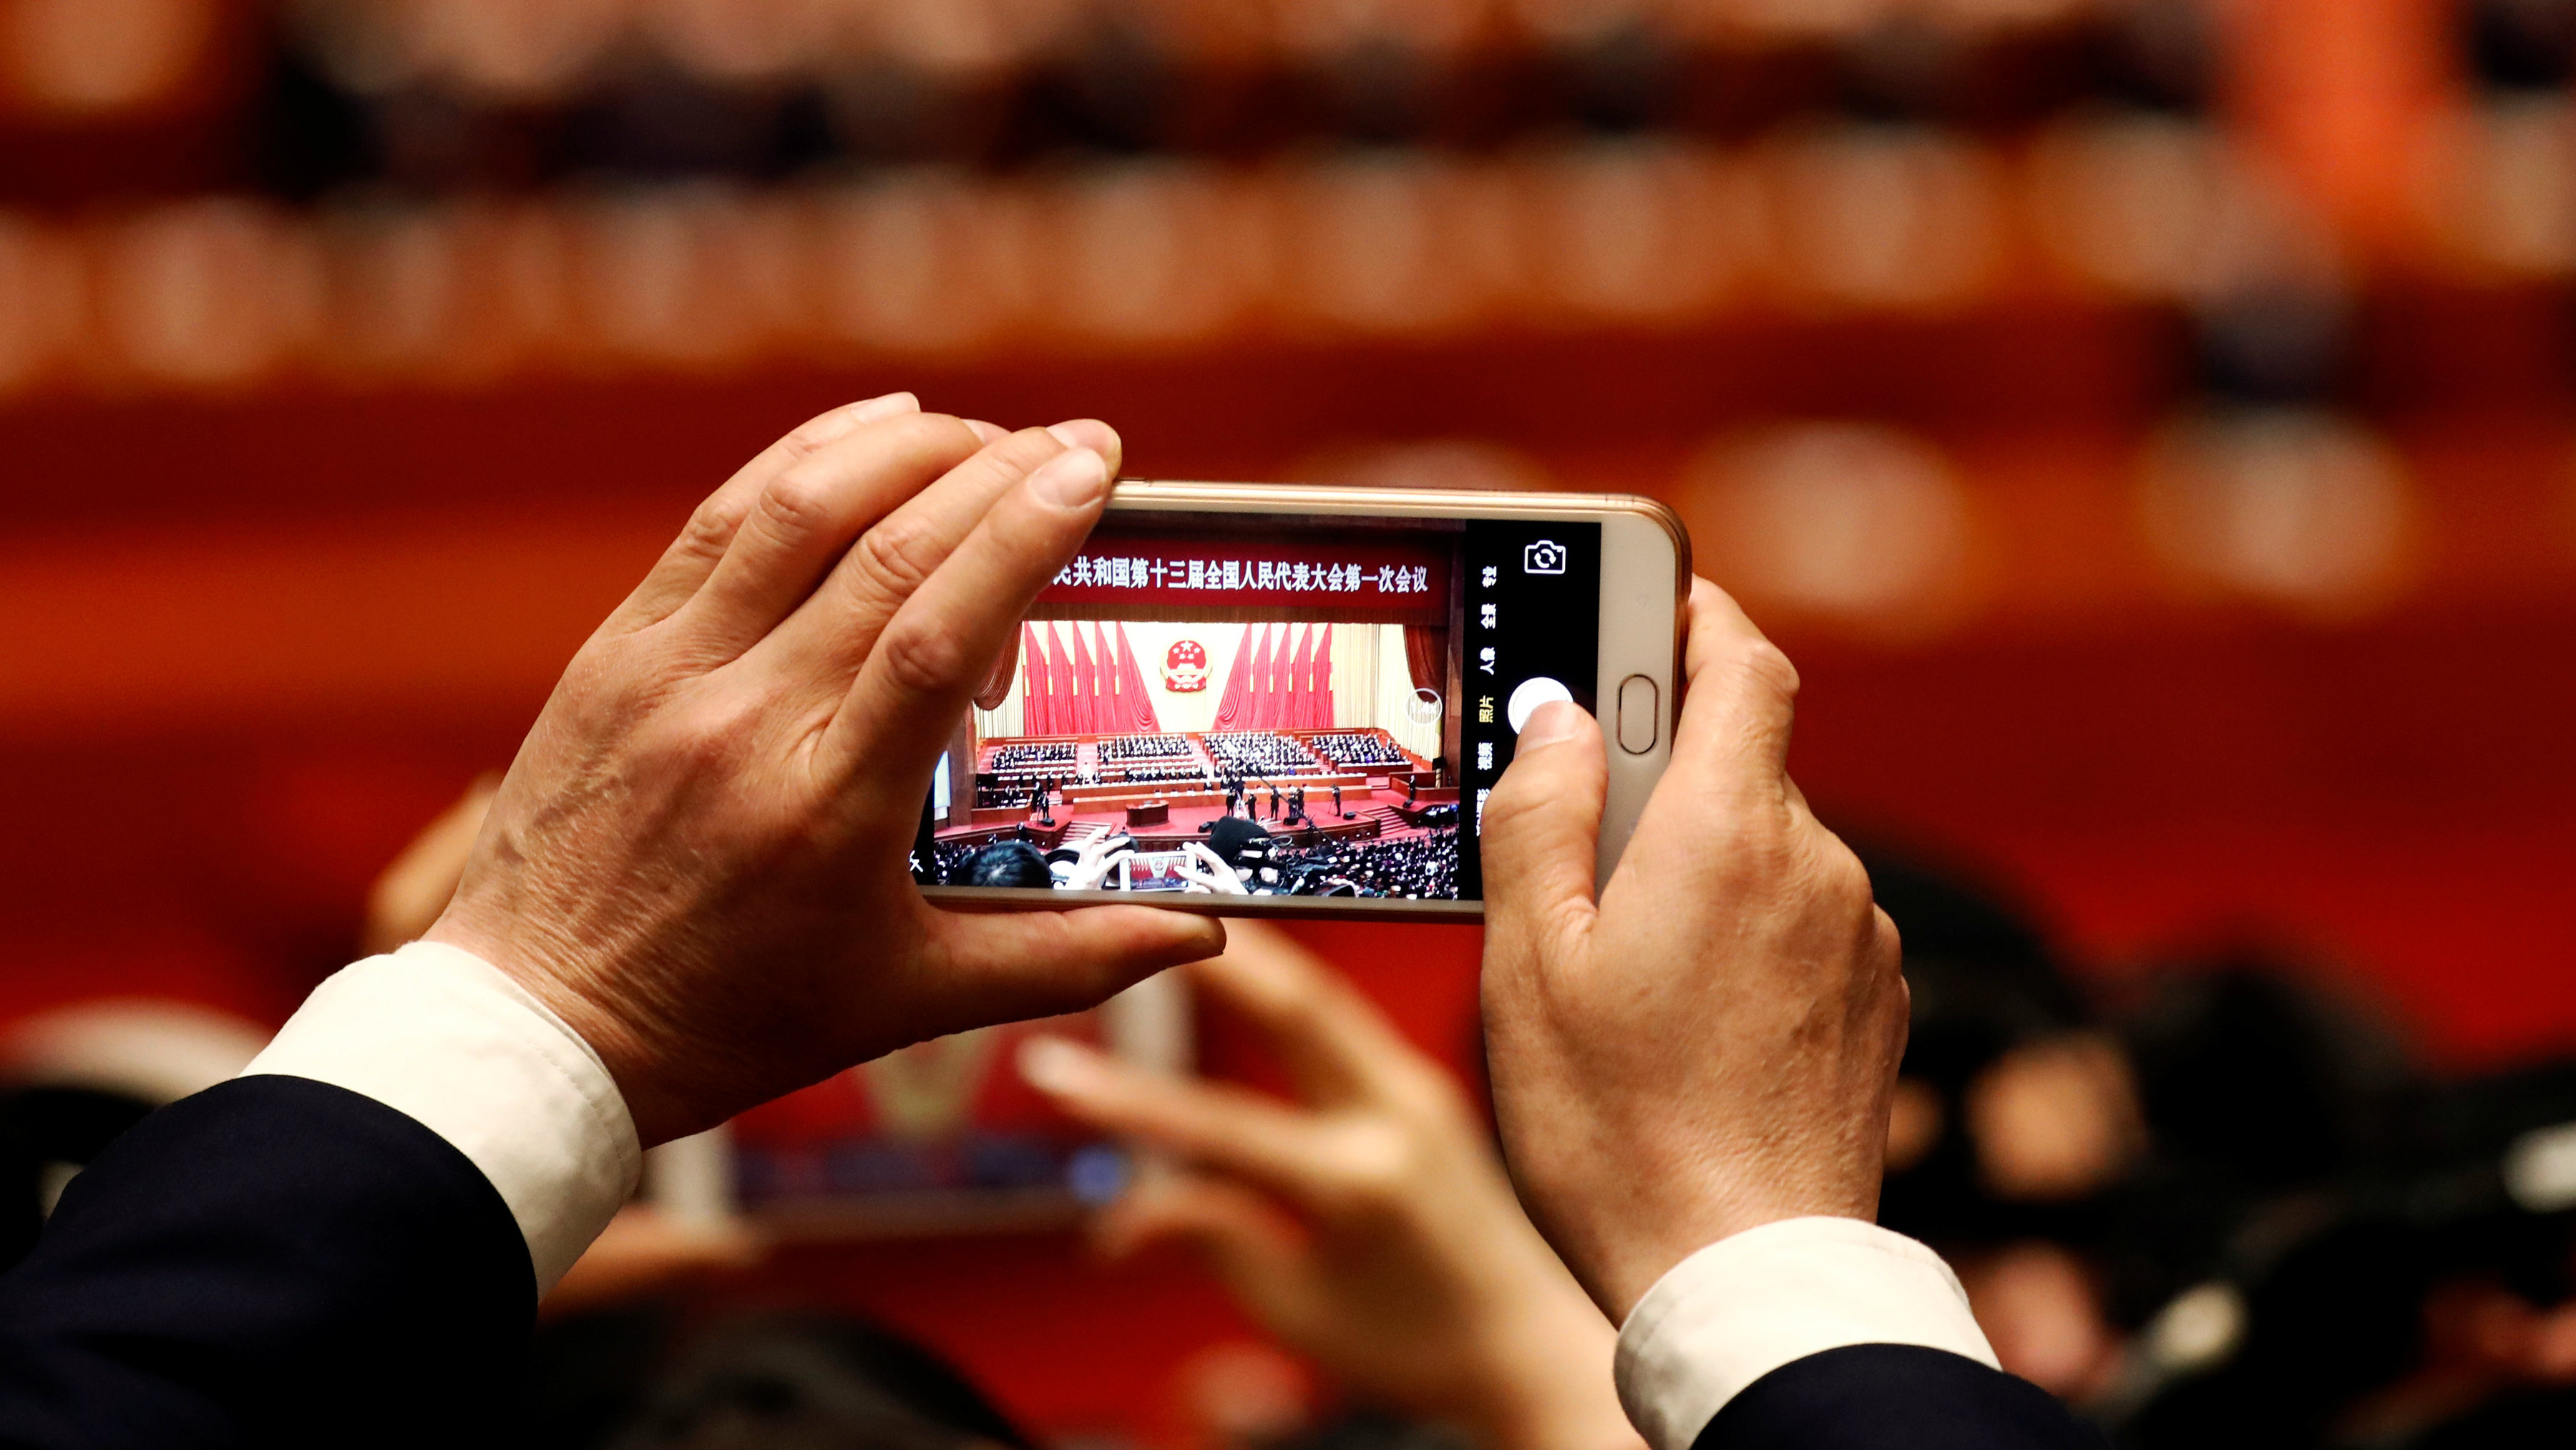 A man takes picture of military delegates arriving for the opening session of the National People's Congress (NPC) at the Great Hall of the People in Beijing, China March 5, 2018.